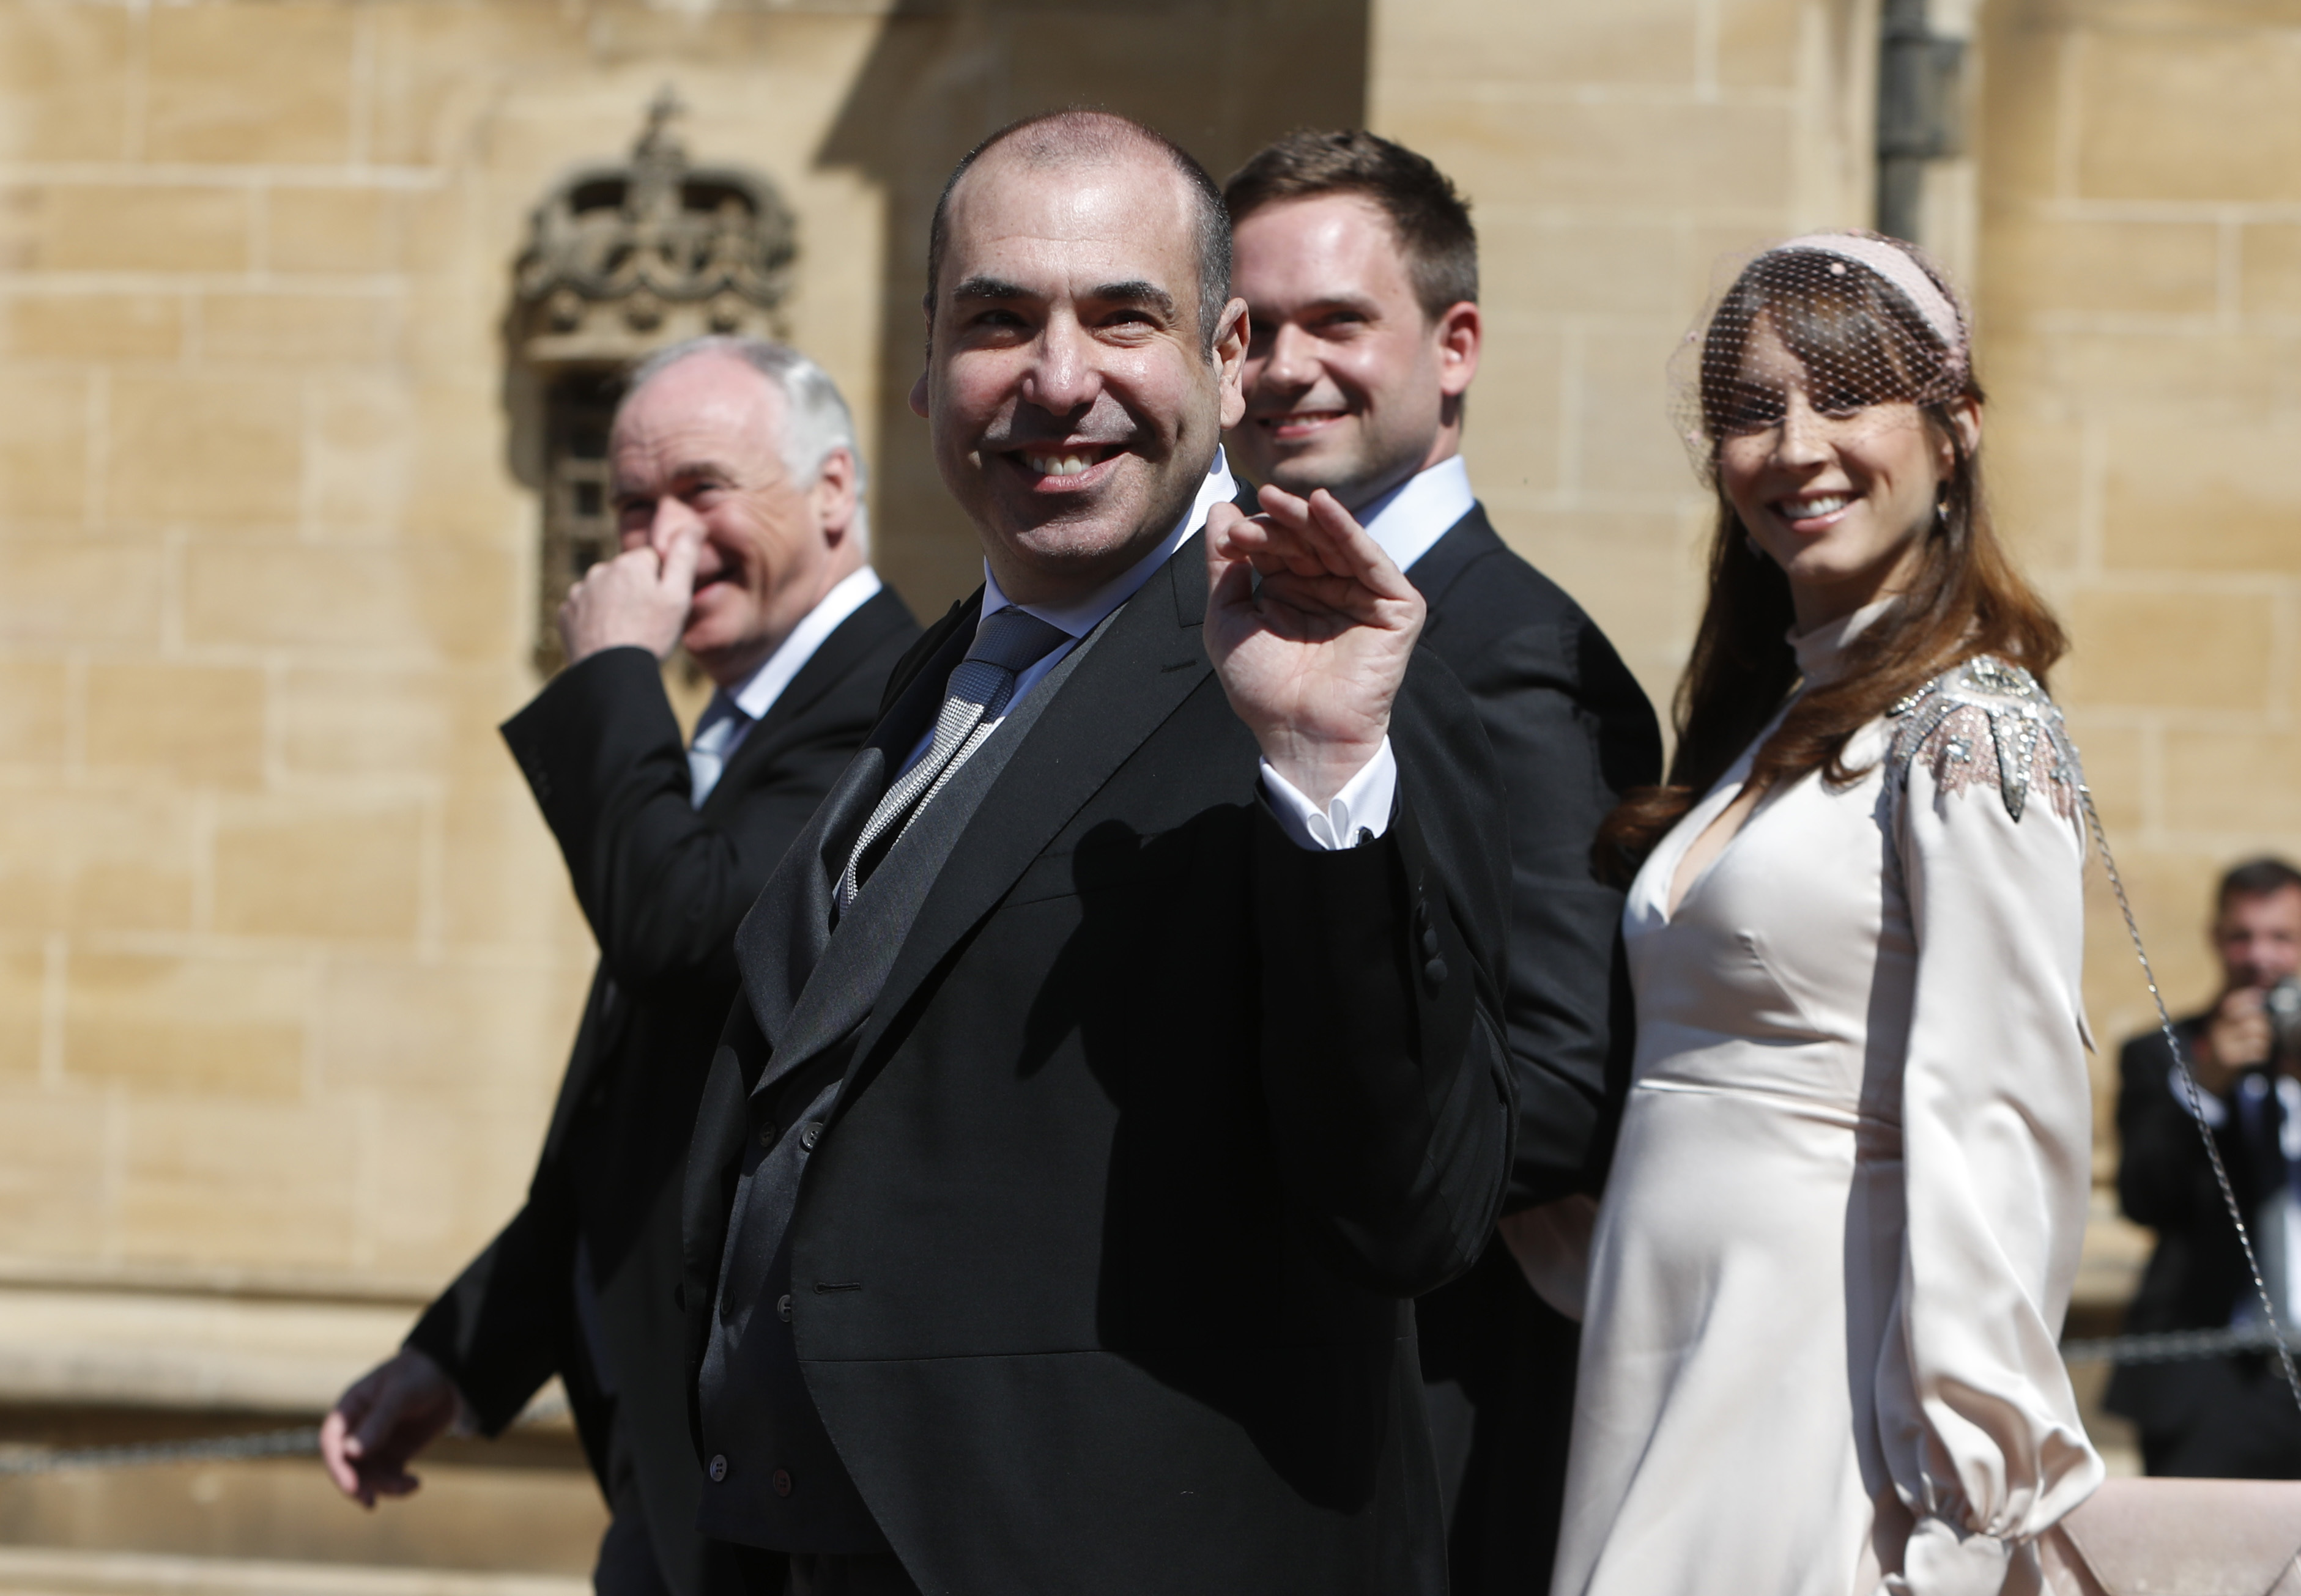 Rick Hoffman Royal Wedding 2018